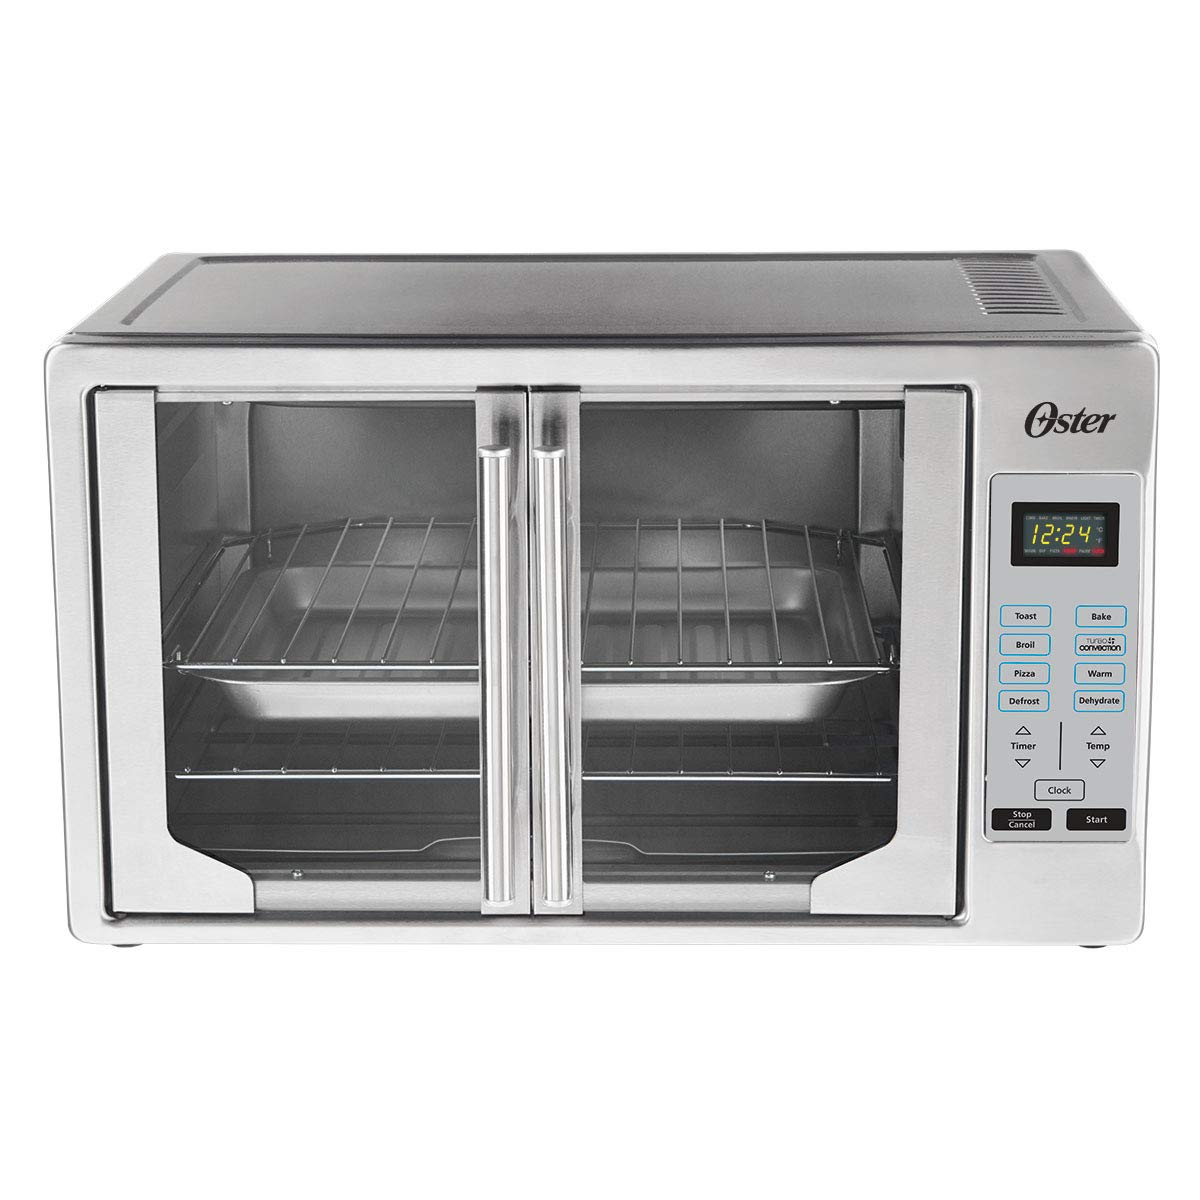 oster best convection oven